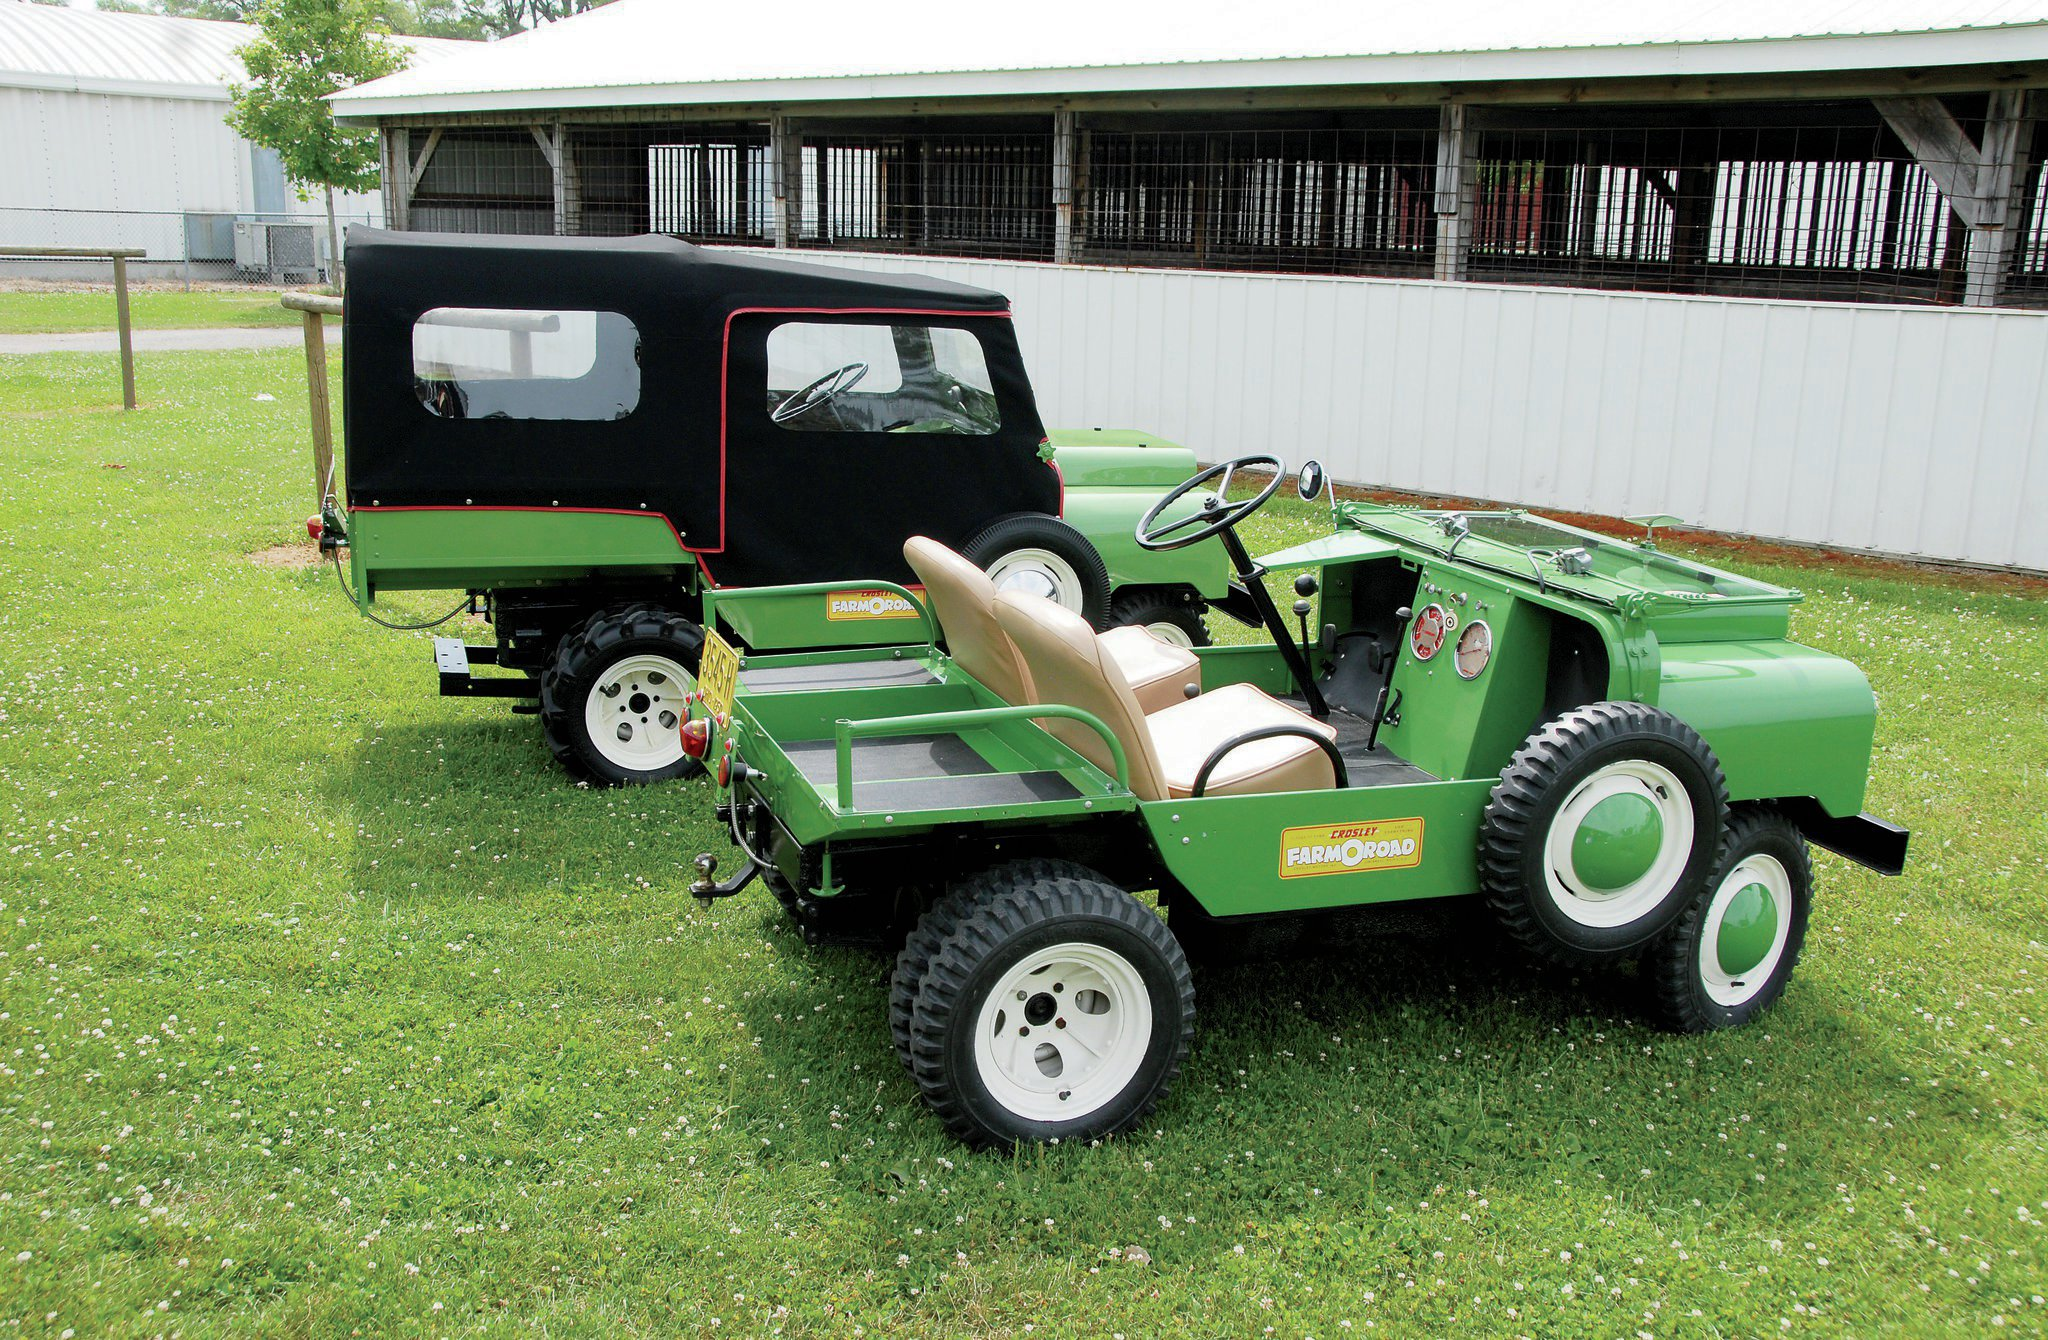 Both these are '50 models, but since Farm-O-Roads are all virtually the same, owners don't quibble about model years. From this angle, you can see the Jeep-style T-handles that hold the rear box in place on Sherman's unit. You can also see the longer dump bed and hydraulic drawbar below on Anspach's. This green is the standard and only FOR color, but they could reputably be special ordered in any color offered on Crosley cars.